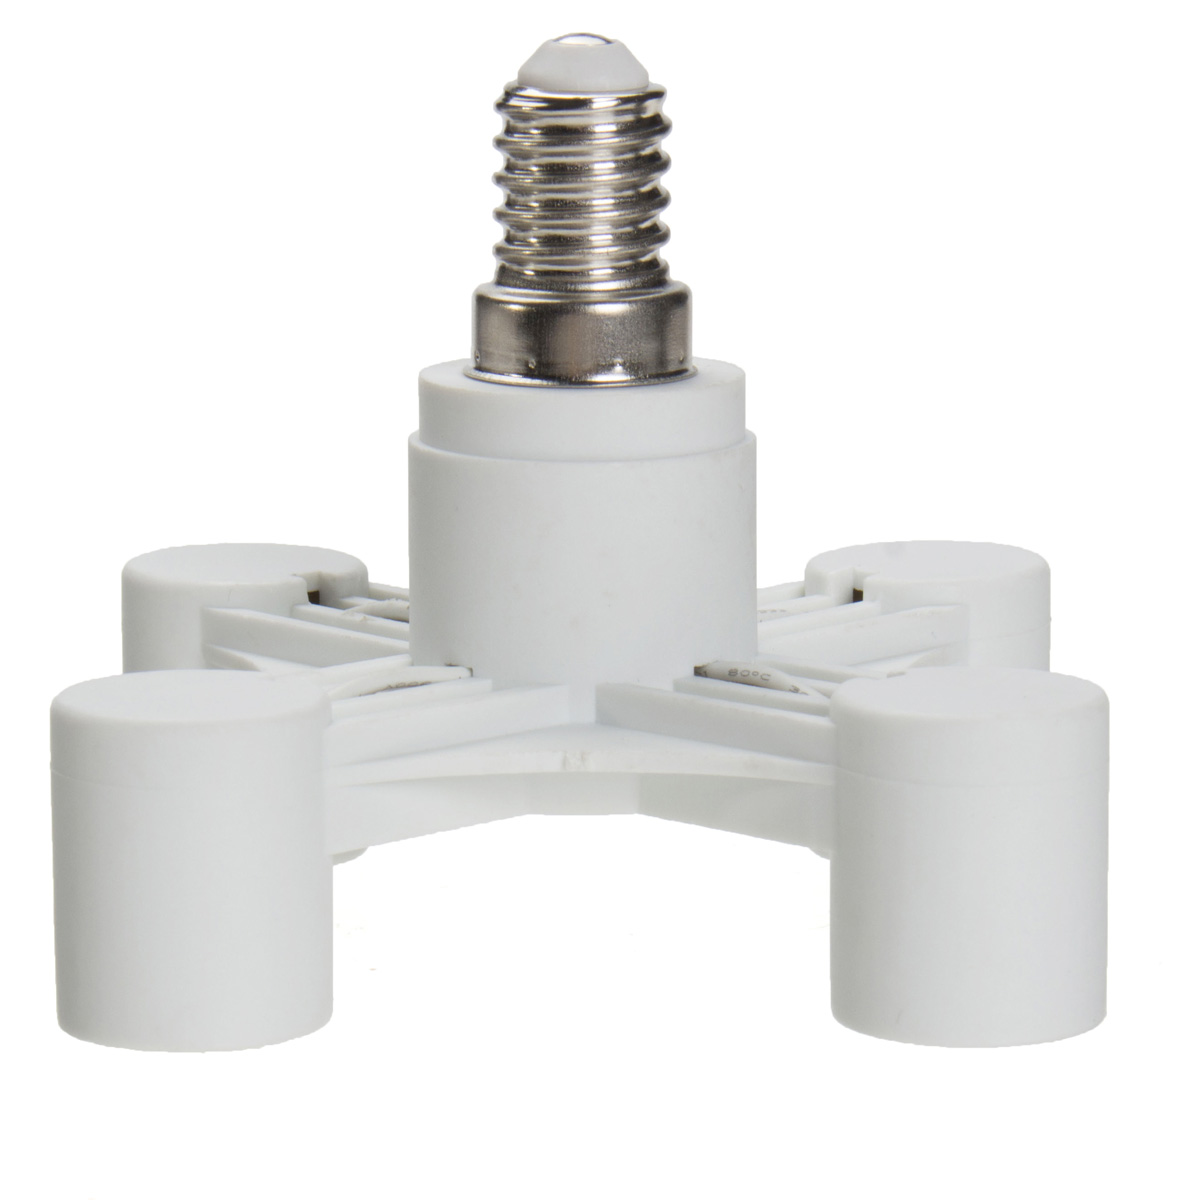 E14 E27 Adapter 4 In 1 E14 E27 Saving Power Light Lamp Bulb Base Adapter